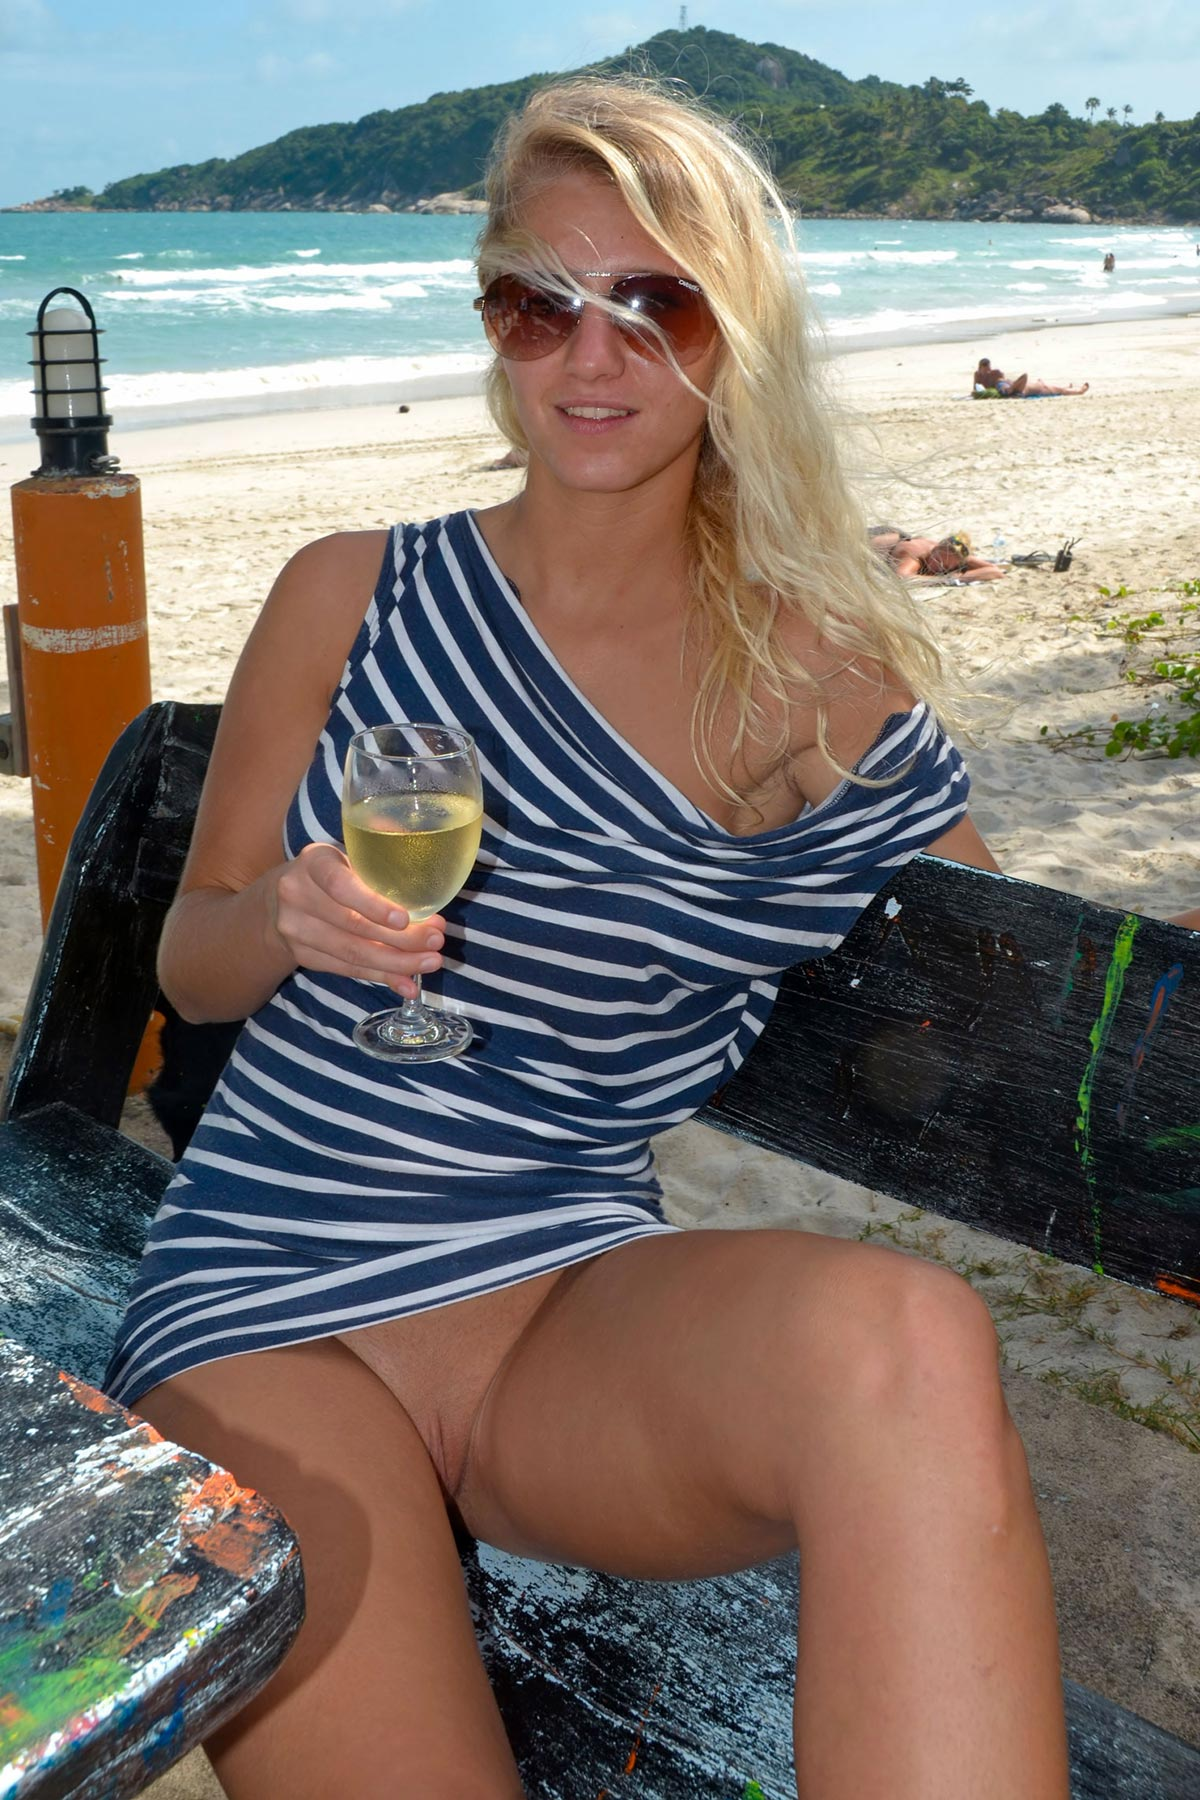 tereza-blonde-thailand-holiday-public-naked-seaside-02